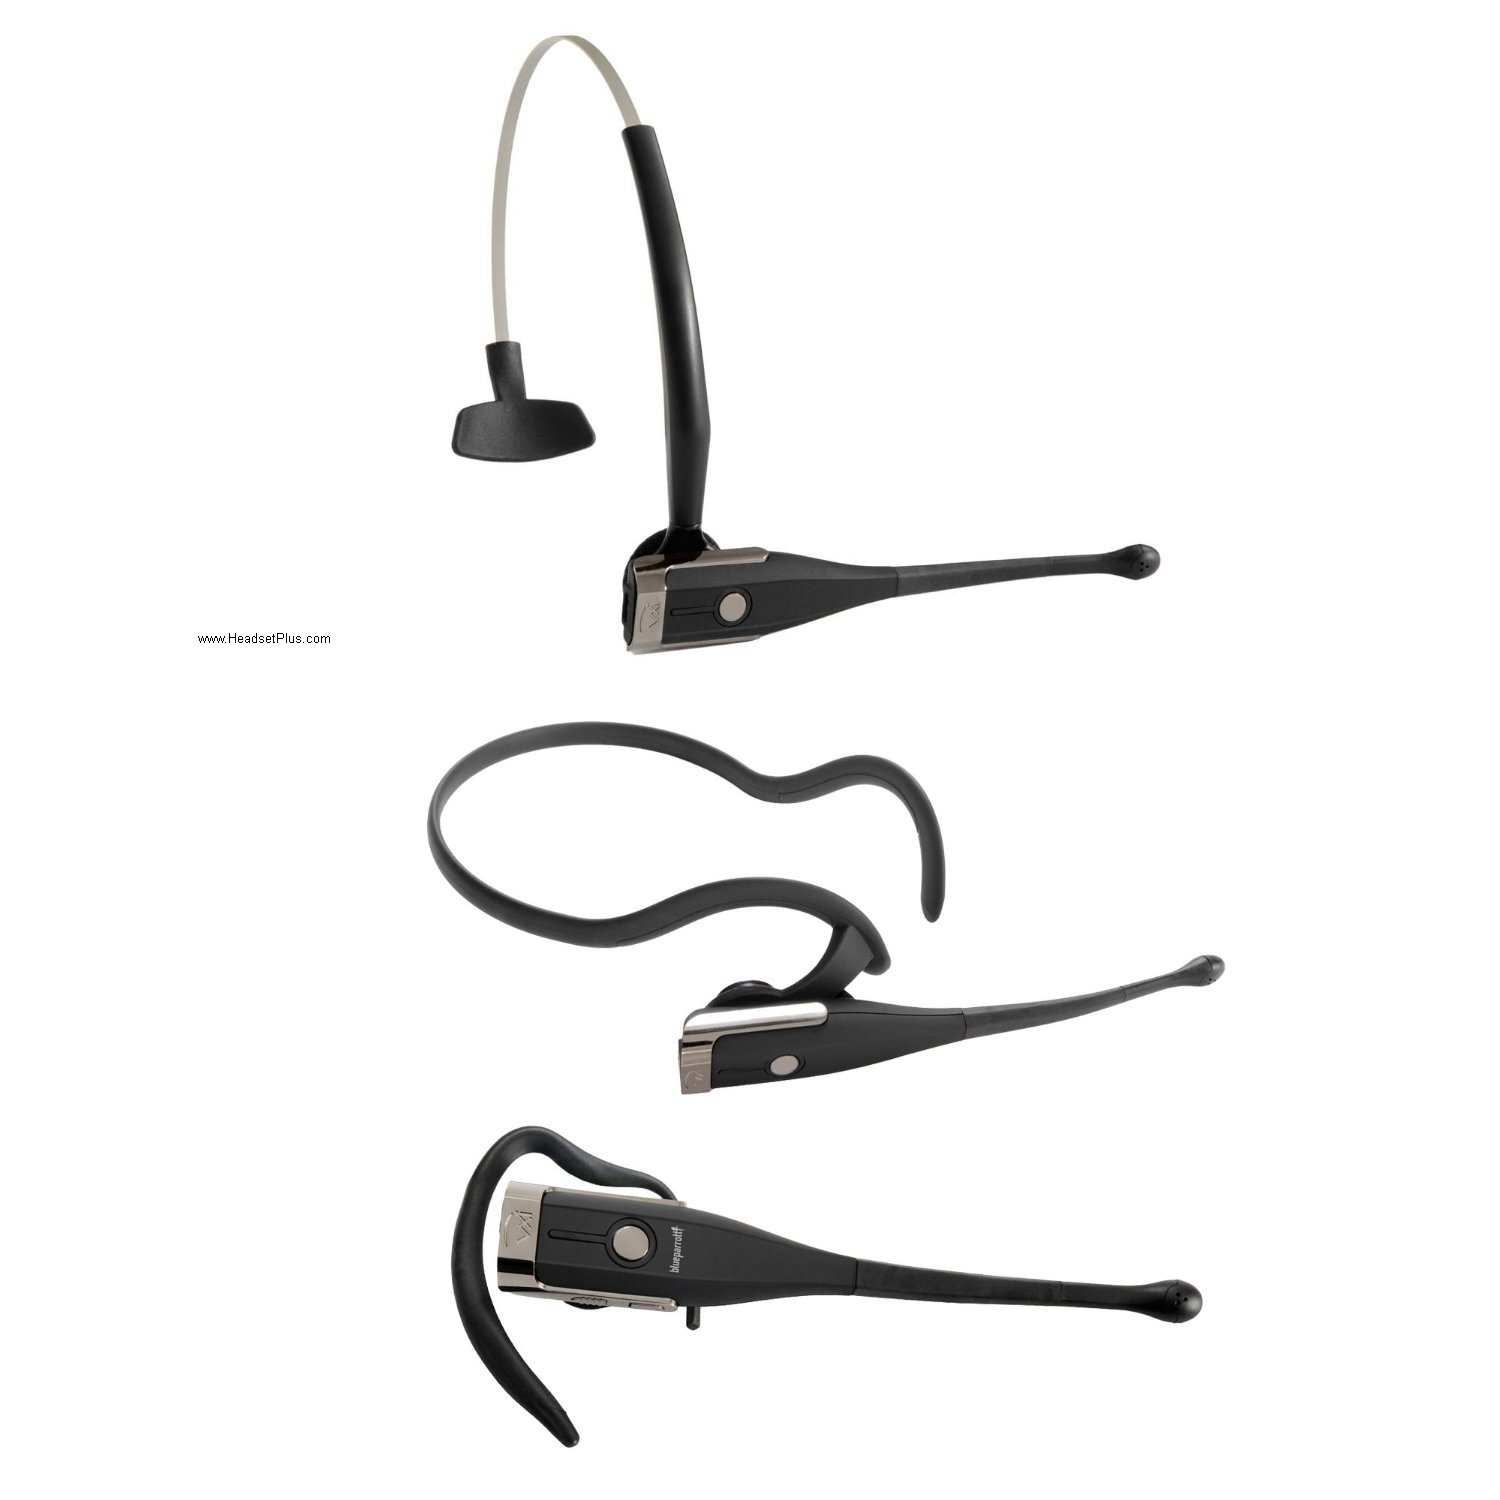 e7acba24ec1 VXi BlueParrott Xpressway II Bluetooth Headset for High Noise ...